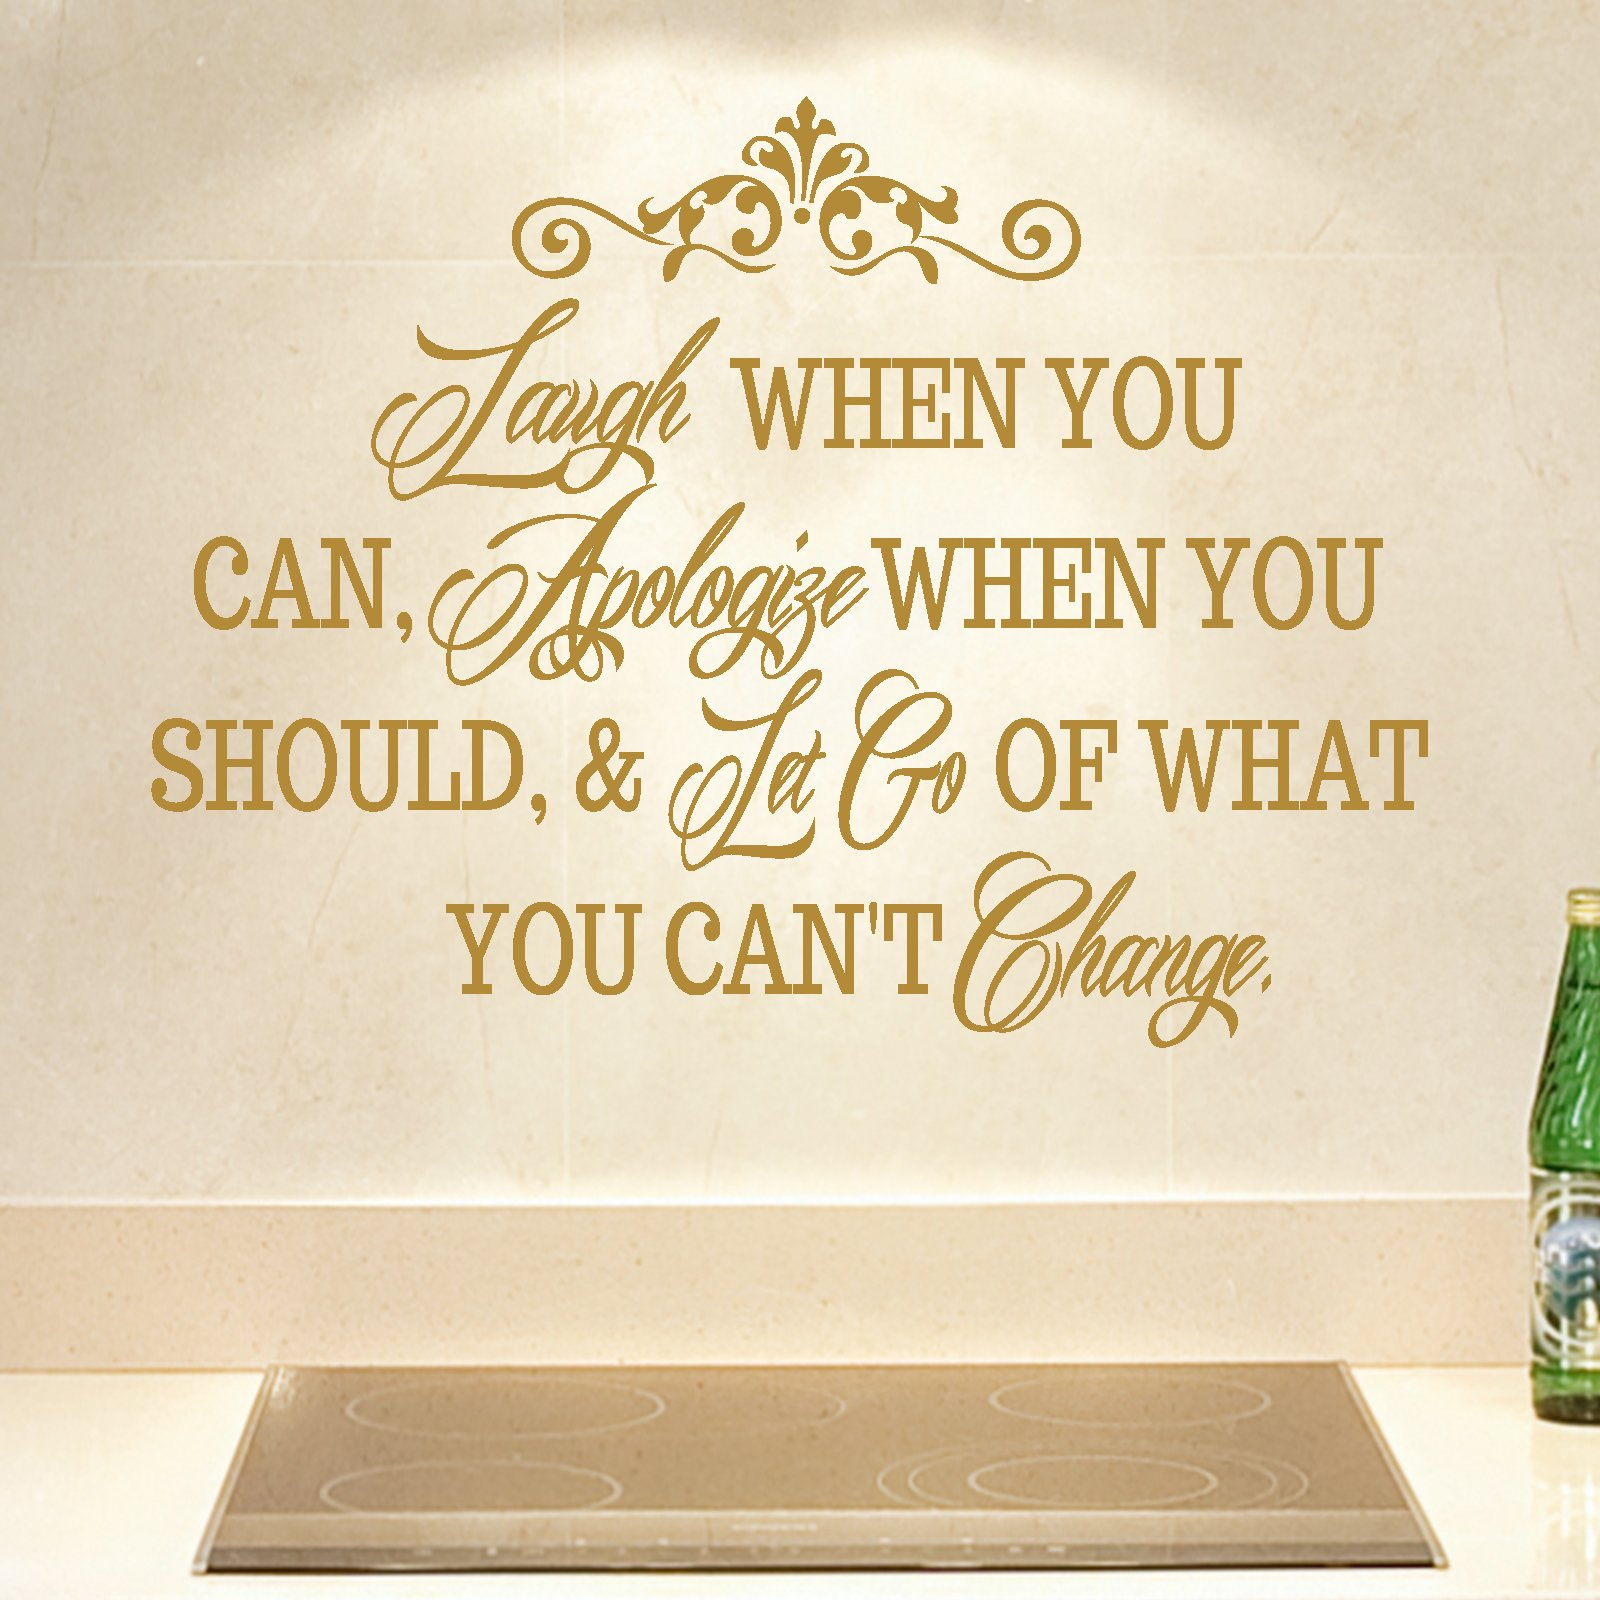 Laugh When You Can Quote Wall Sticker - World of Wall Stickers